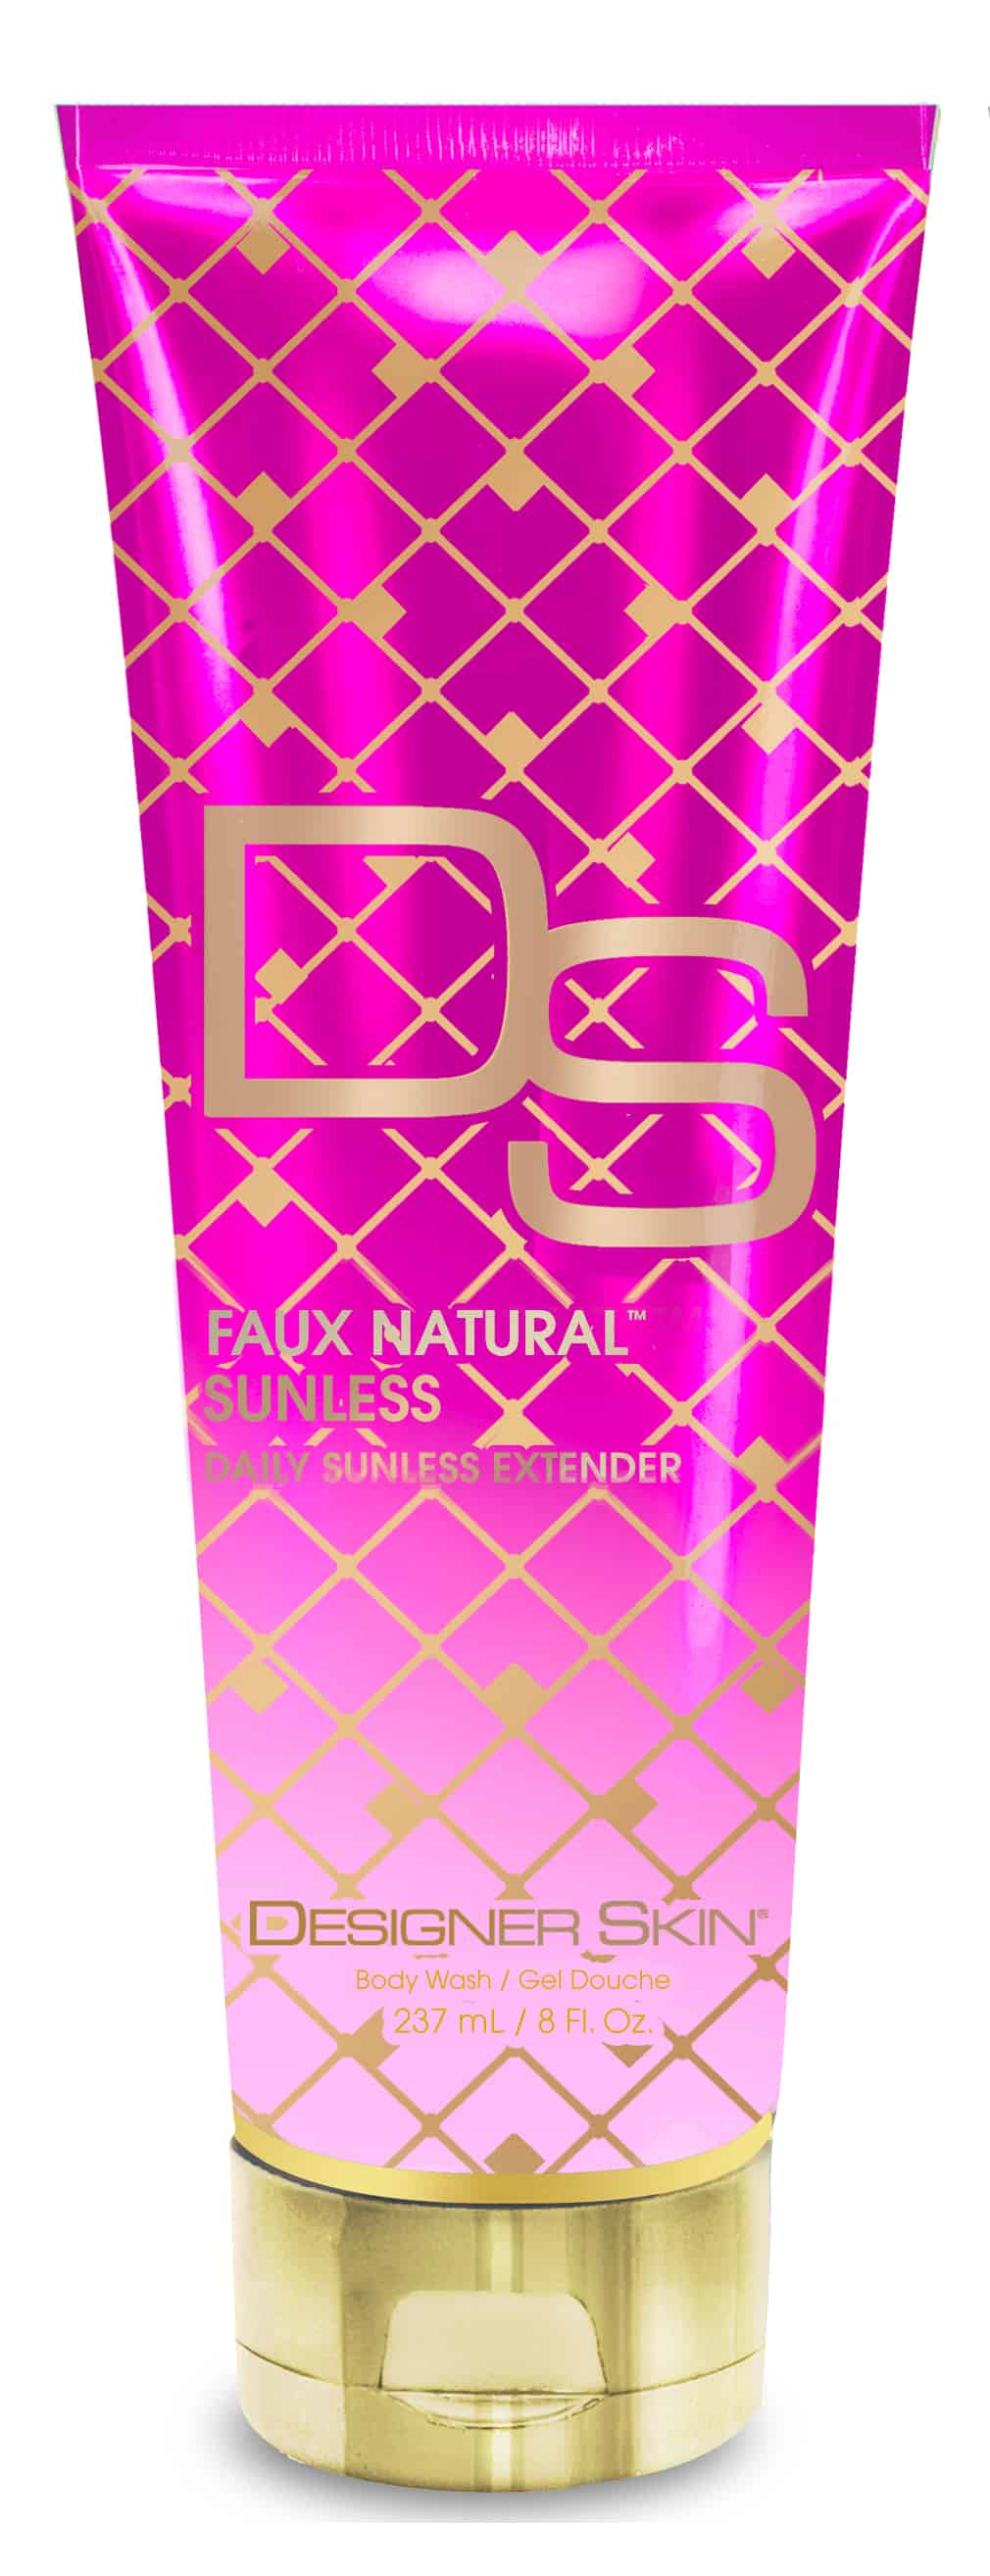 Faux natural daily sunless extender bottle tanning for A touch of gold tanning salon